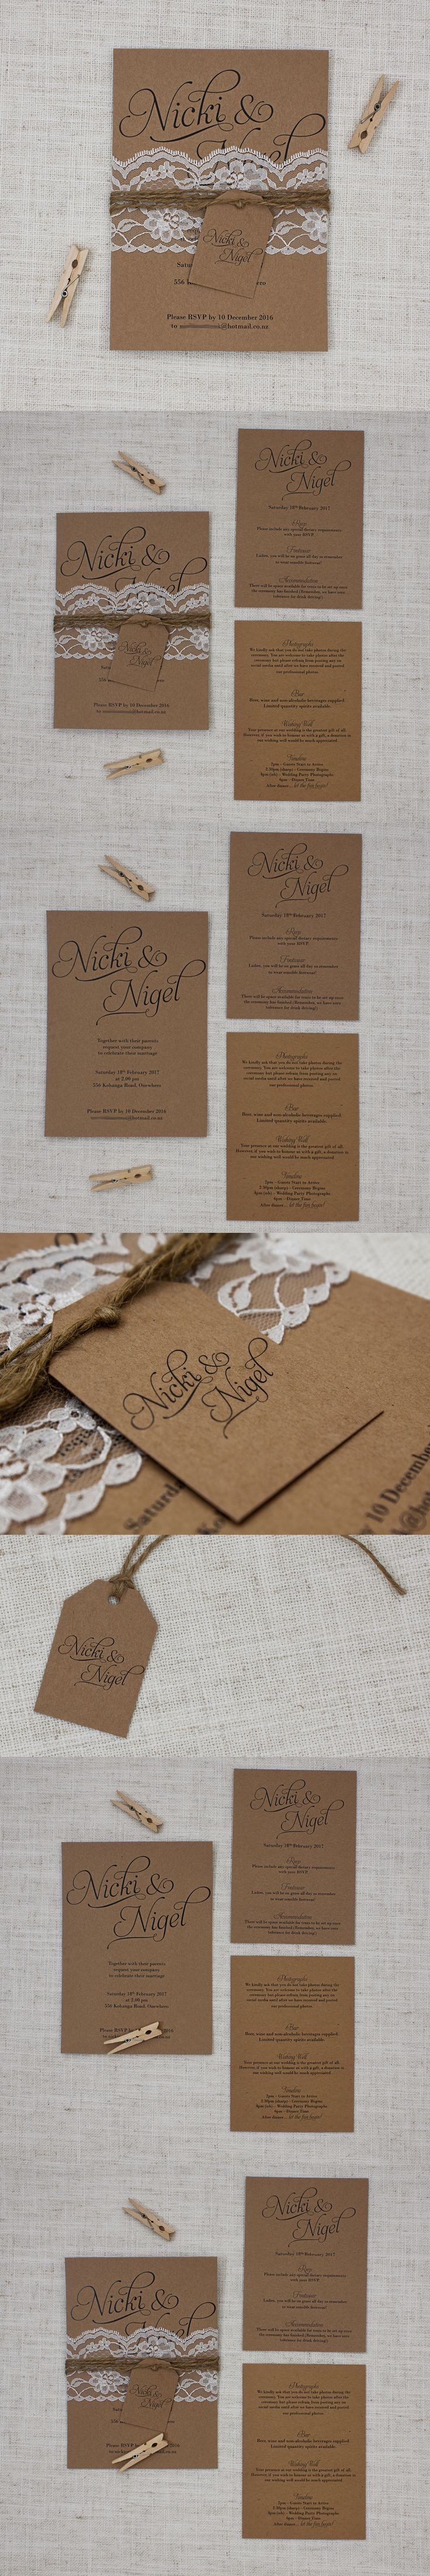 Simple Script Rustic Lace & Twine Wedding Invite - Be My Guest http://bemyguest.co.nz/archives/item/rustic-lace-twine-wedding-invite/